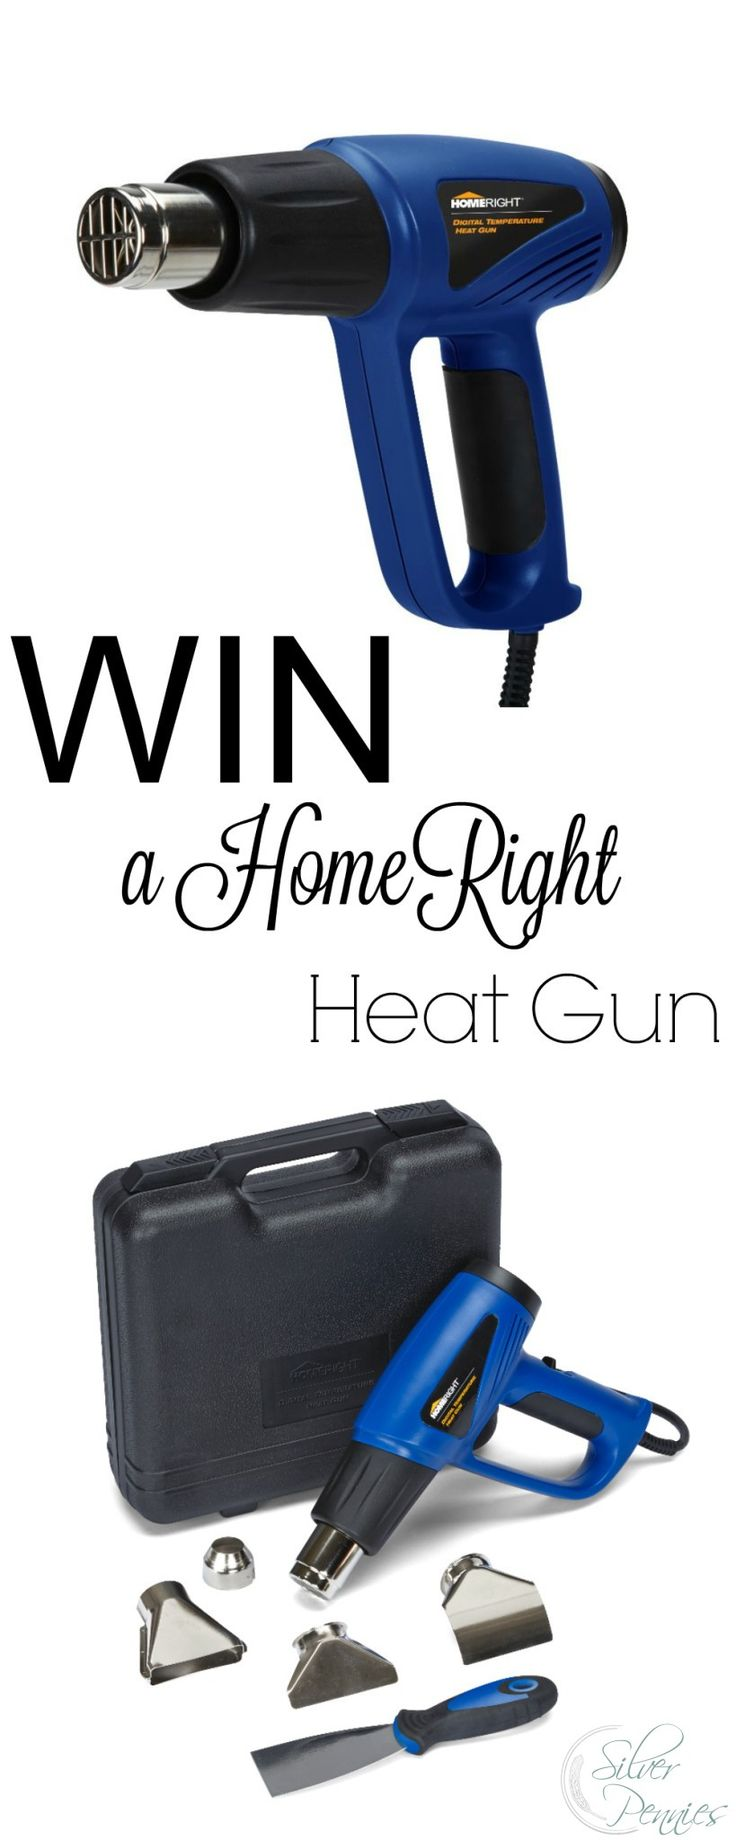 Win a HomeRight Heat Gun #sponsored